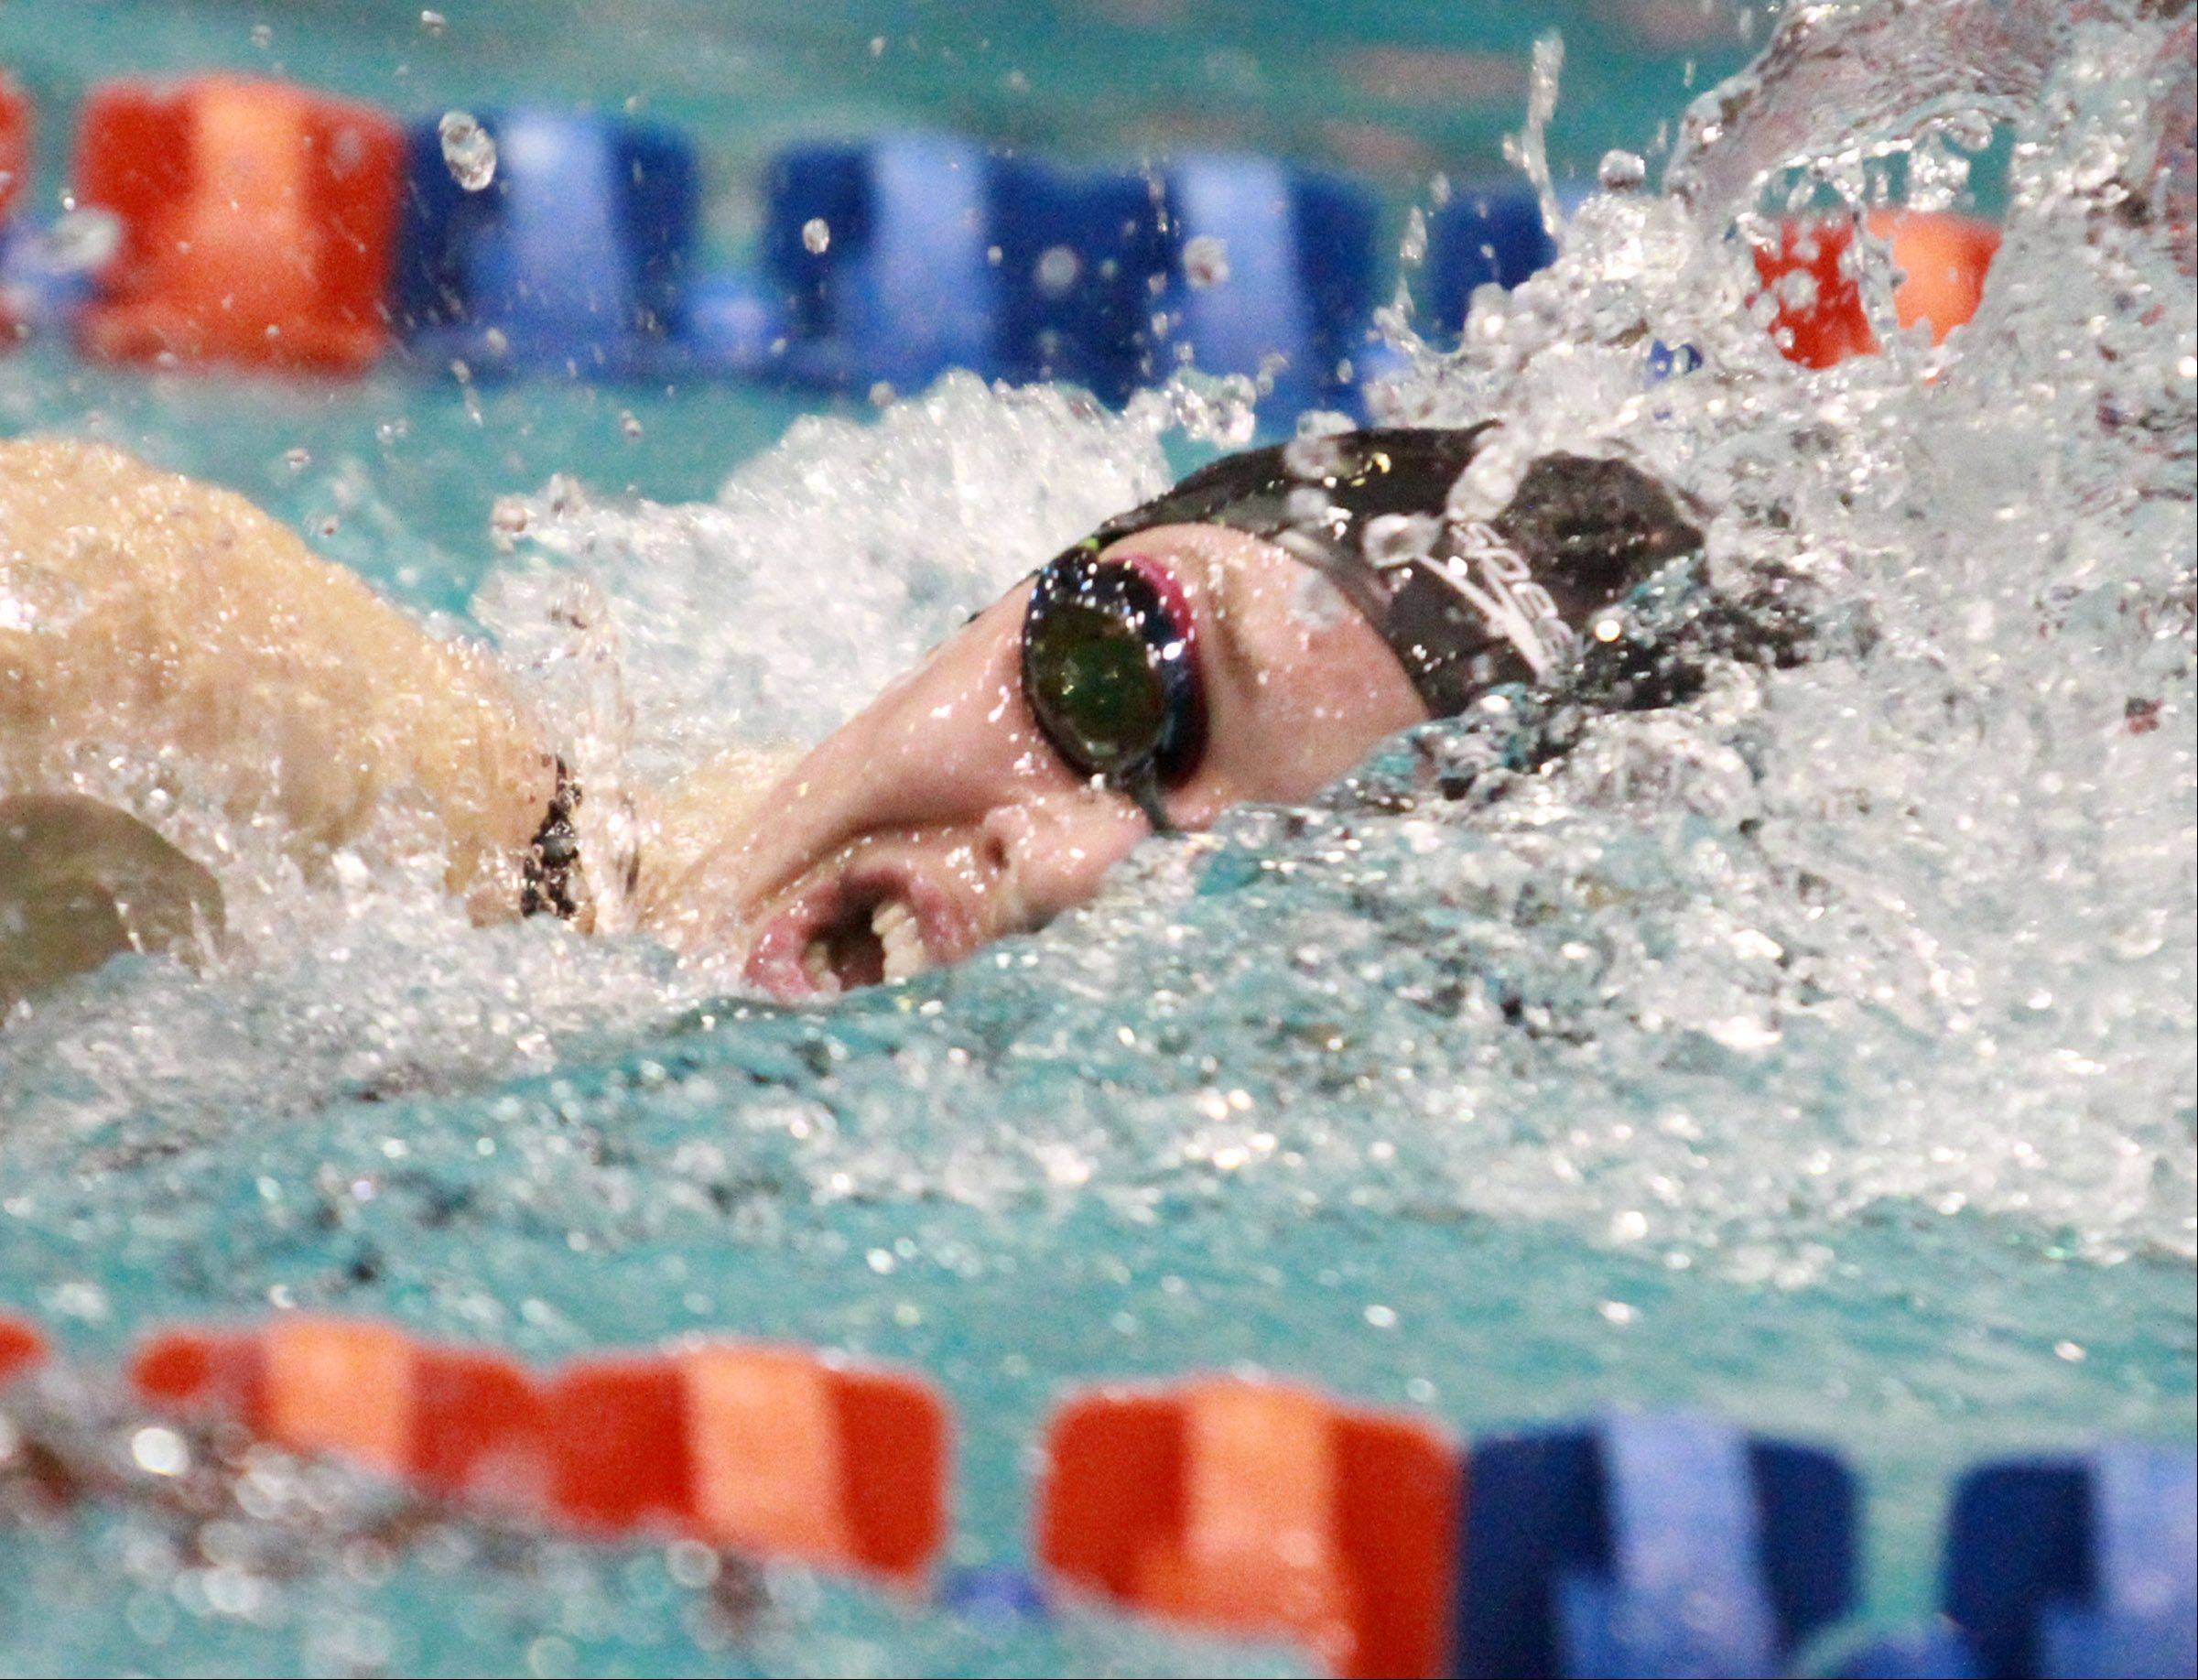 Hersey's Amanda Petro finished seventh in the 200-yard individual medley at state preliminaries in Evanston on Friday.